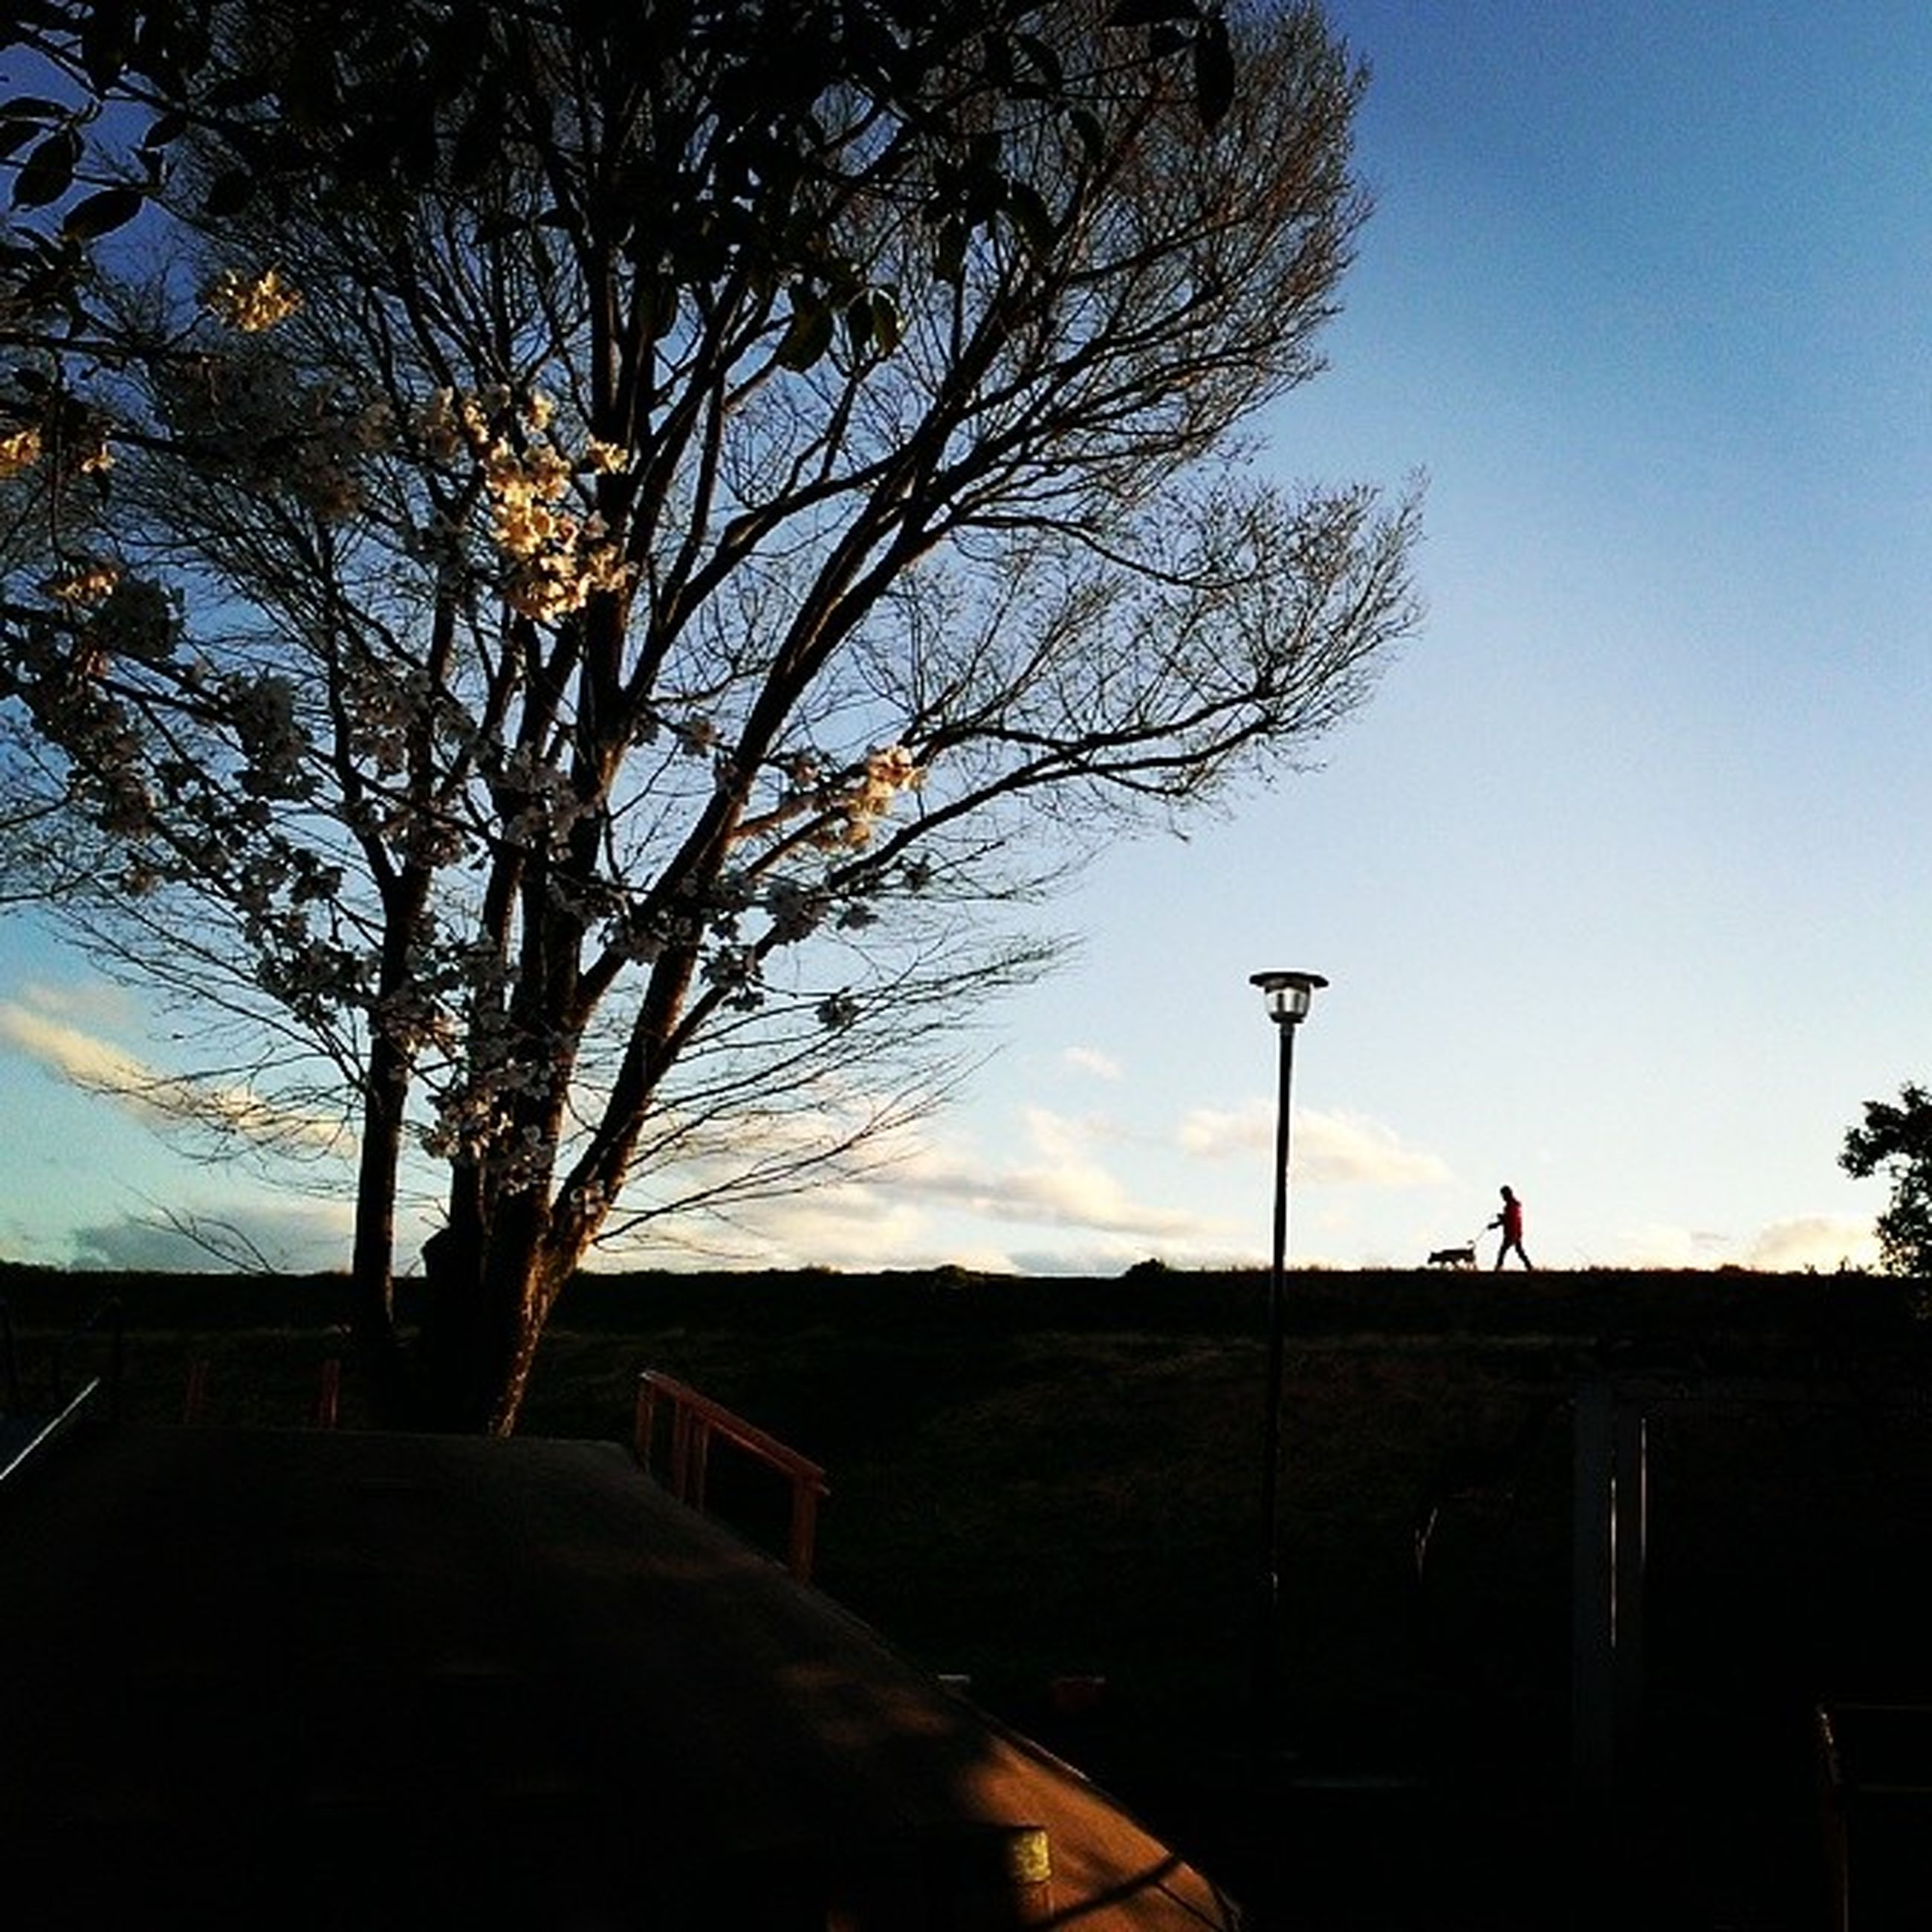 tree, silhouette, sky, bare tree, branch, built structure, street light, building exterior, sunset, clear sky, architecture, road, nature, tranquility, dusk, outdoors, tranquil scene, no people, house, beauty in nature